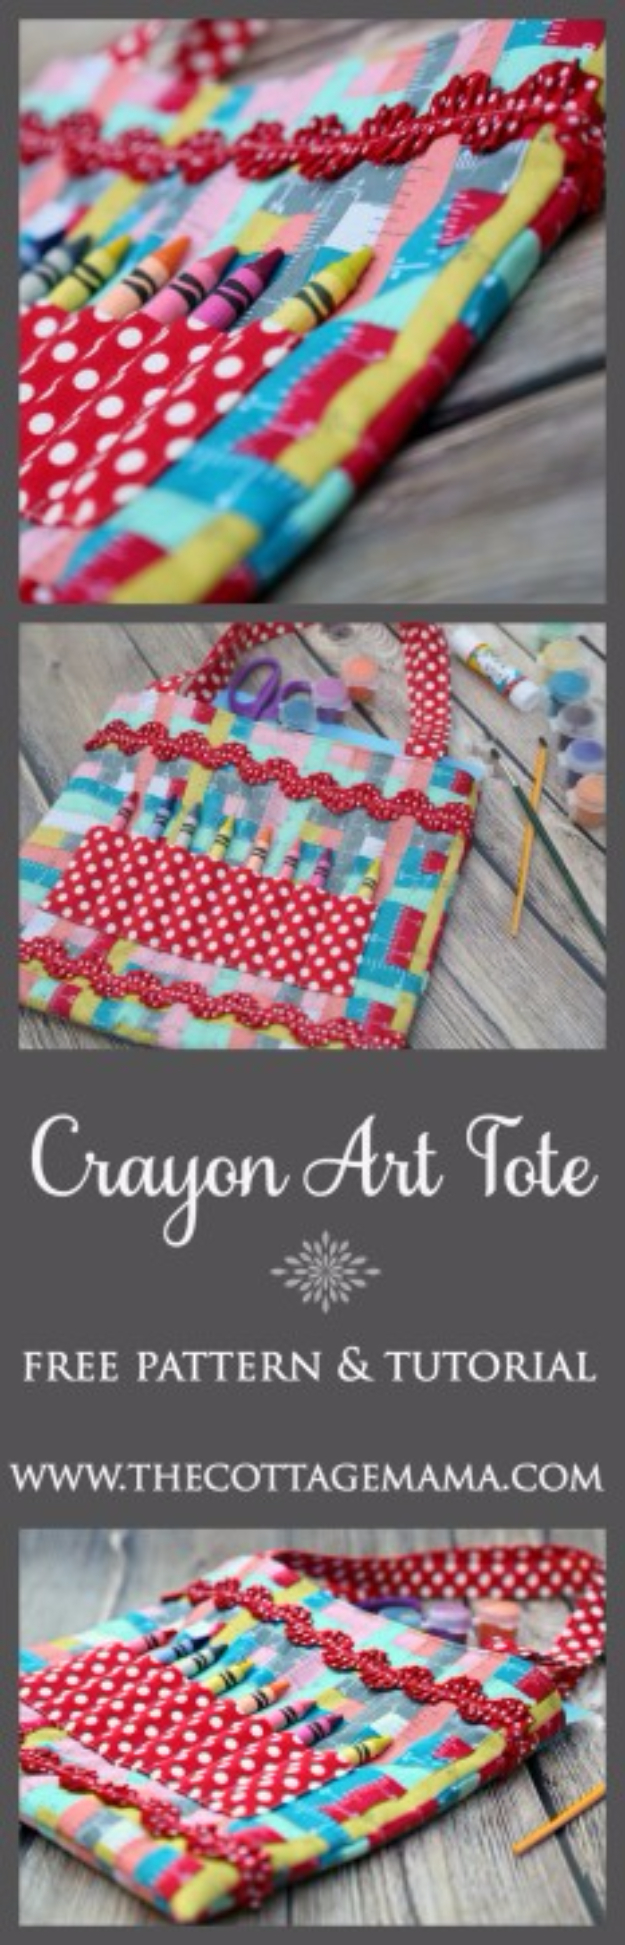 DIY Gifts To Sew For Friends - Crayon Art Tote - Quick and Easy Sewing Projects and Free Patterns for Best Gift Ideas and Presents - Creative Step by Step Tutorials for Beginners - Cute Home Decor, Accessories, Kitchen Crafts and DIY Fashion Ideas #diy #crafts #sewing